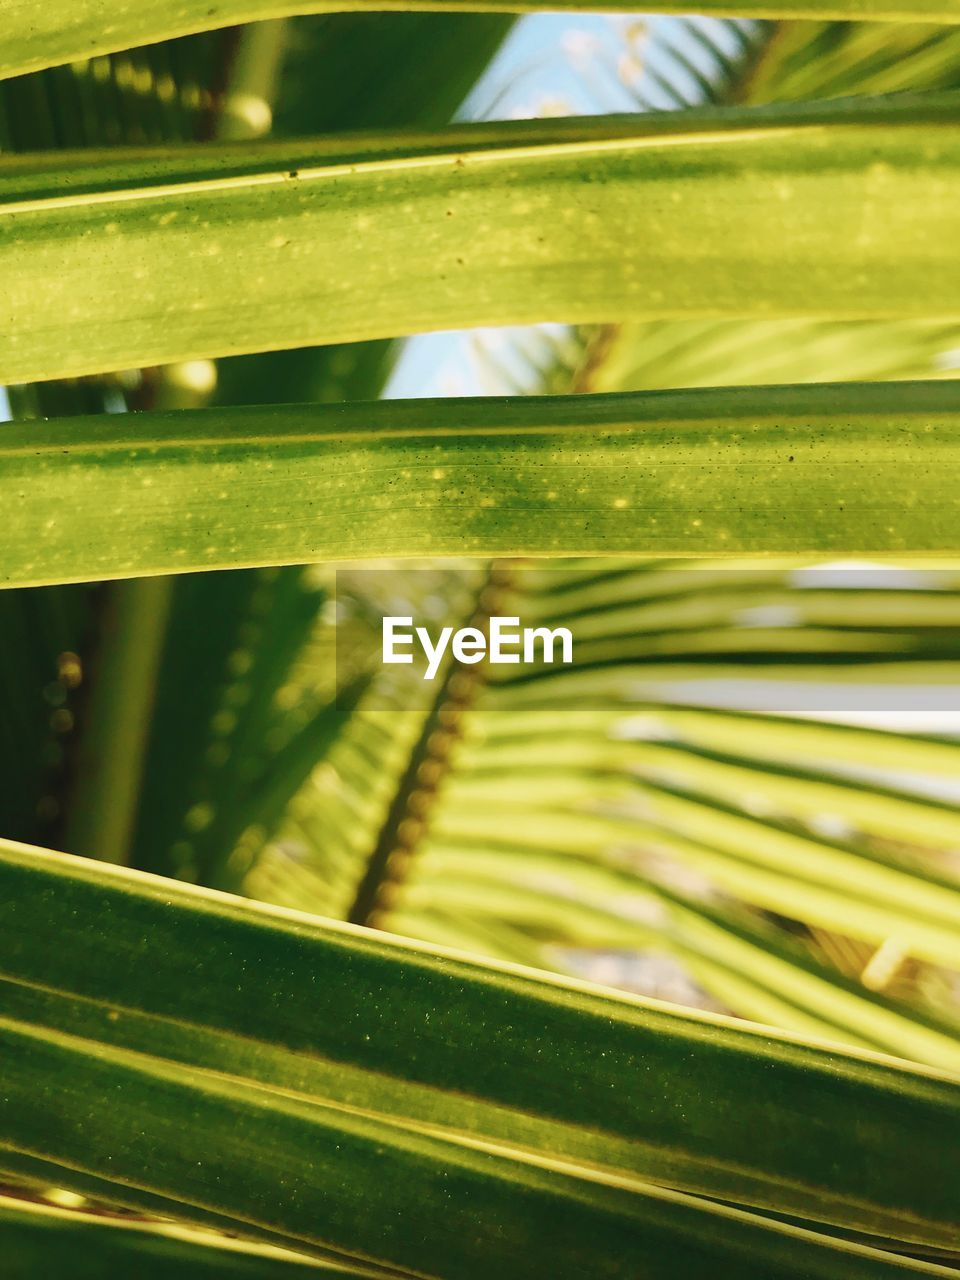 green color, close-up, no people, leaf, plant part, plant, growth, full frame, pattern, day, nature, focus on foreground, beauty in nature, outdoors, backgrounds, selective focus, sunlight, metal, palm tree, palm leaf, leaves, blade of grass